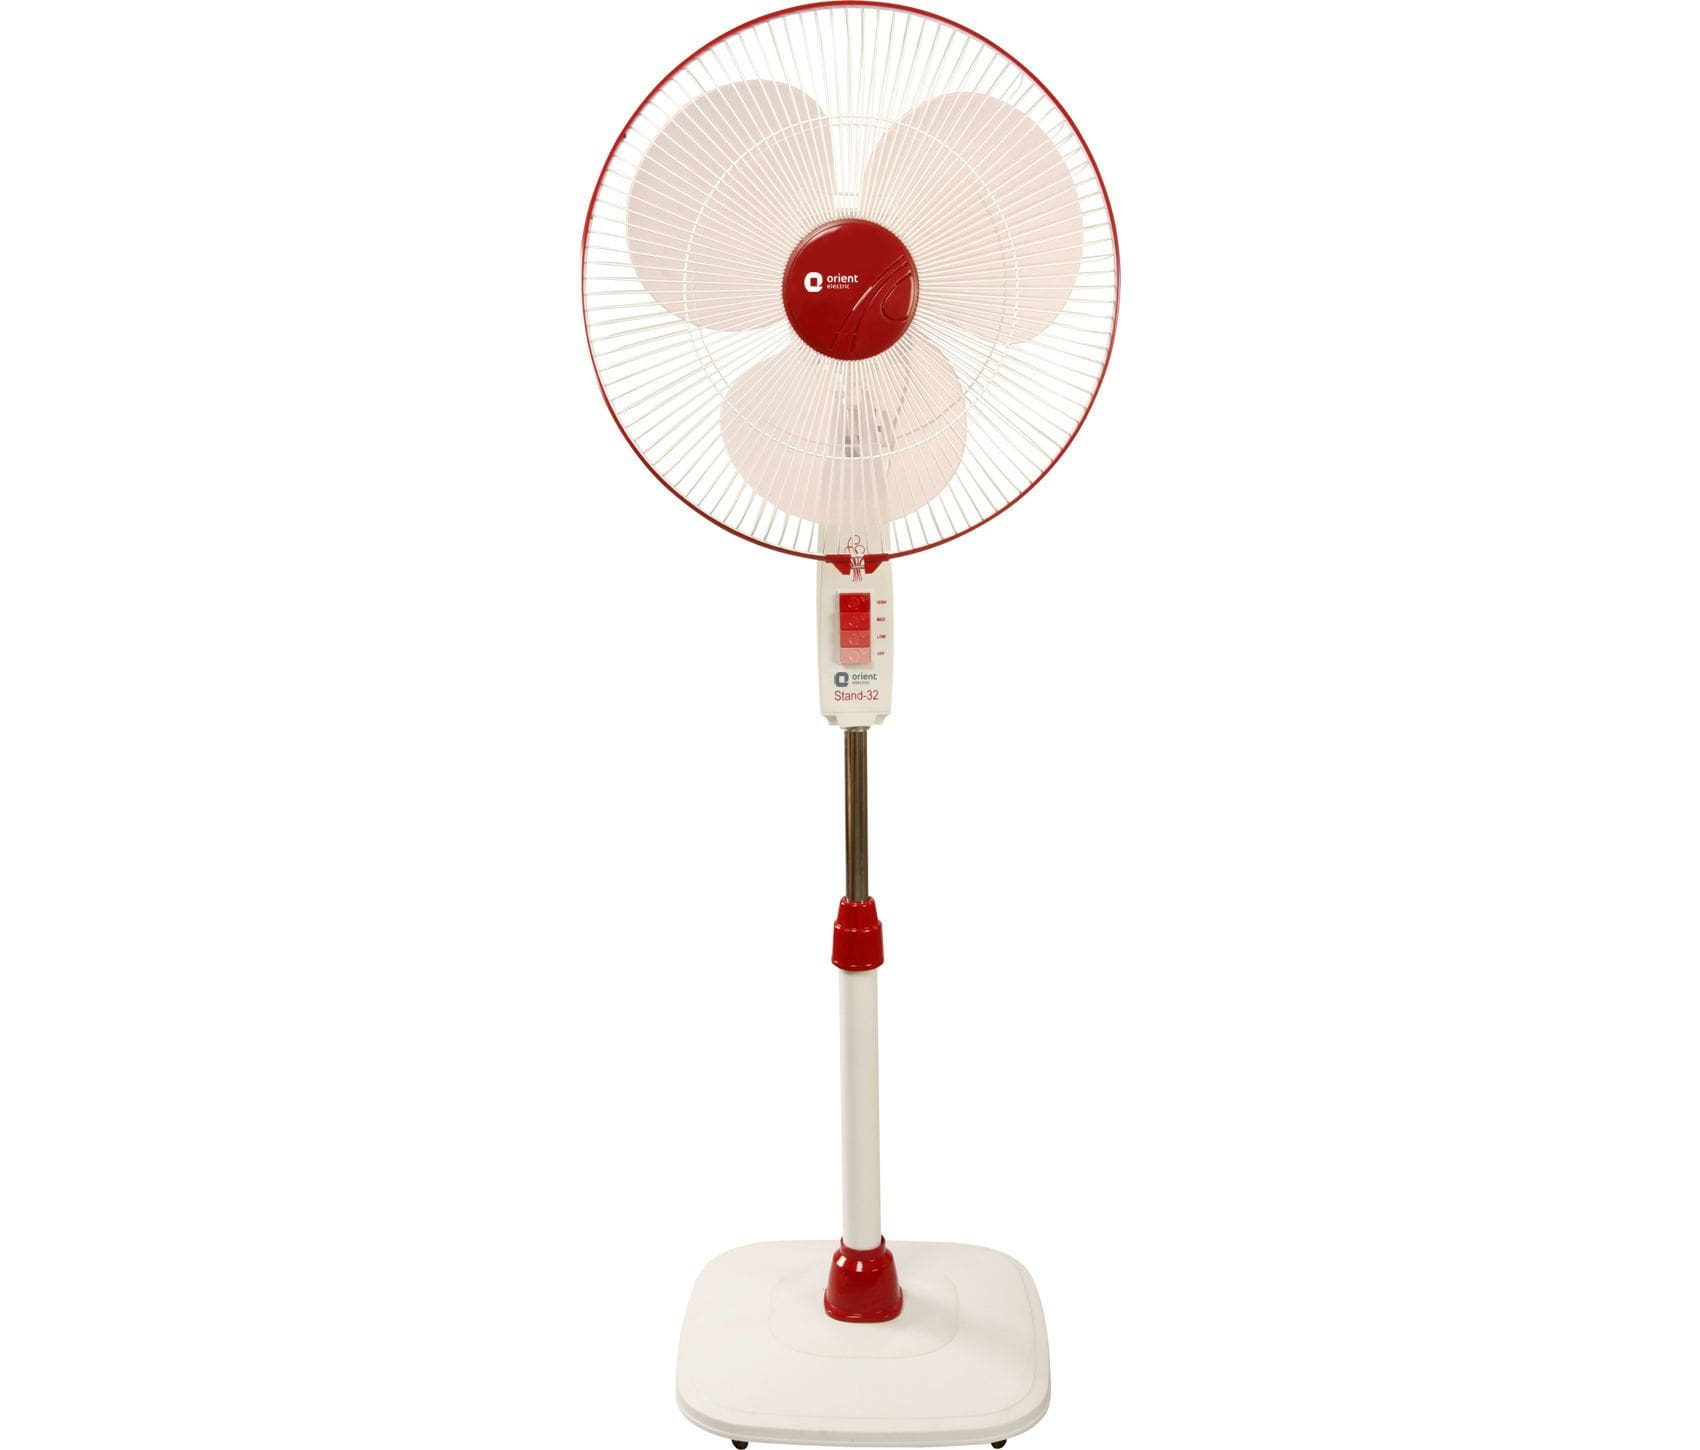 Orient Electric Pedestal Fan Stand-32 with Easy Wheels, 400mm (Red) - KITCHEN MART